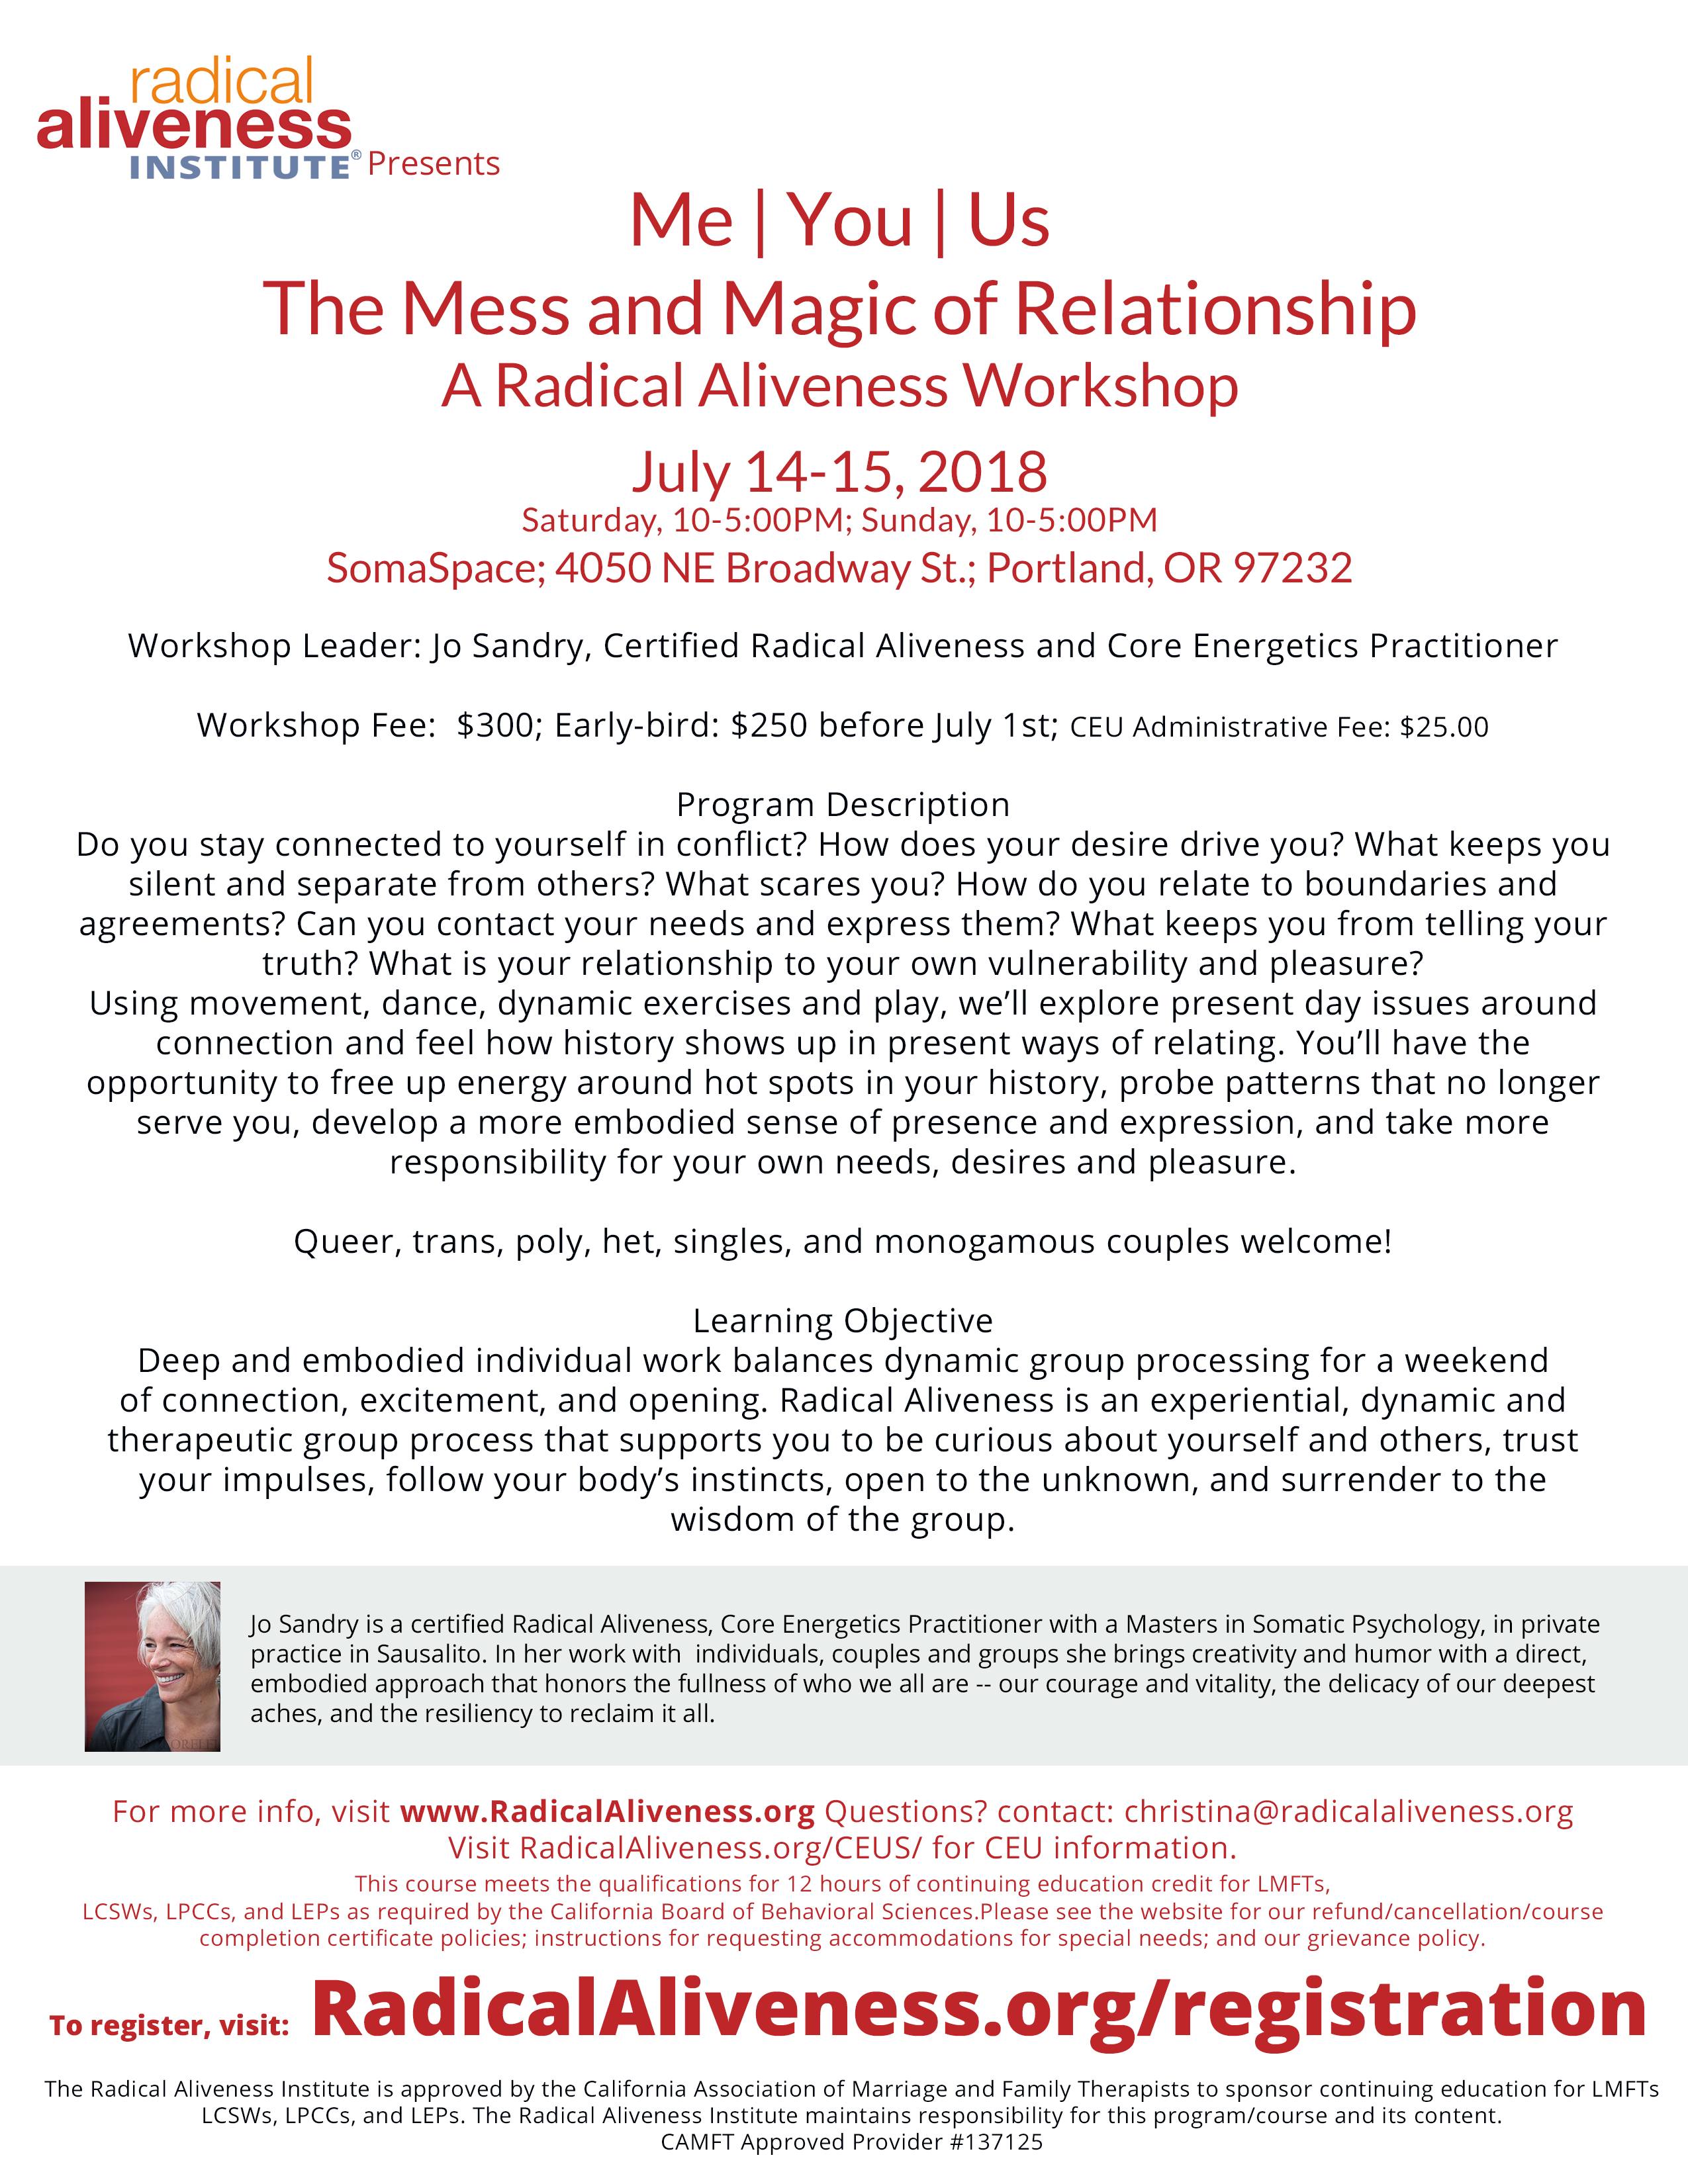 Me | You | Us: The Mess and Magic of Relationship @ SomaSpace | Portland | Oregon | United States